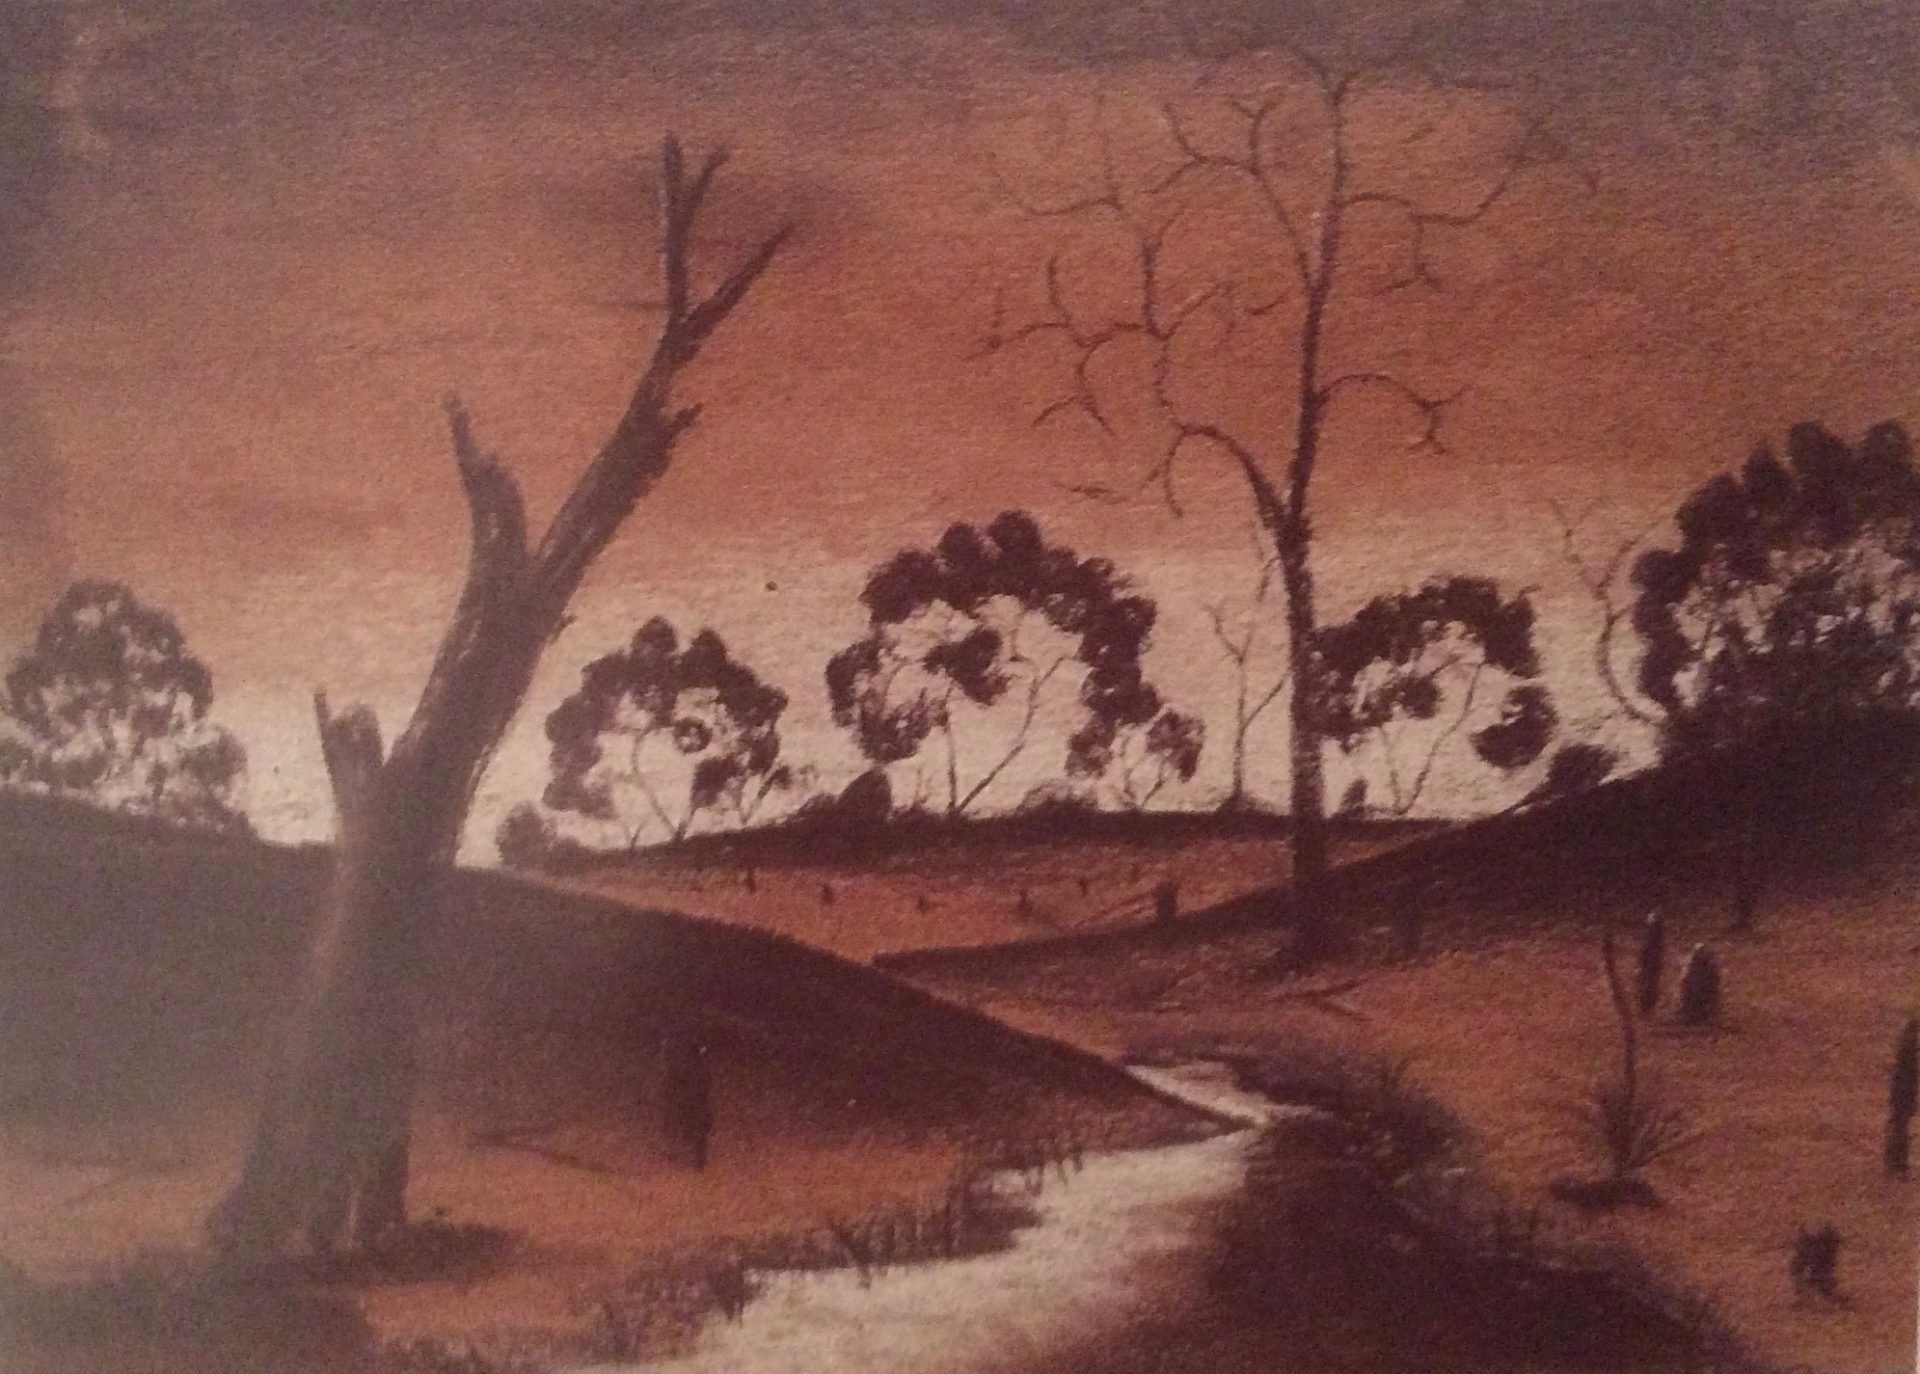 Golden sunset by Cliff Ryder, pastel on paper, 18 x 25cm, 1950. Stan, Melvie and Gael Phillips Collection 1947 - 65, Berndt Museum of Anthropology.